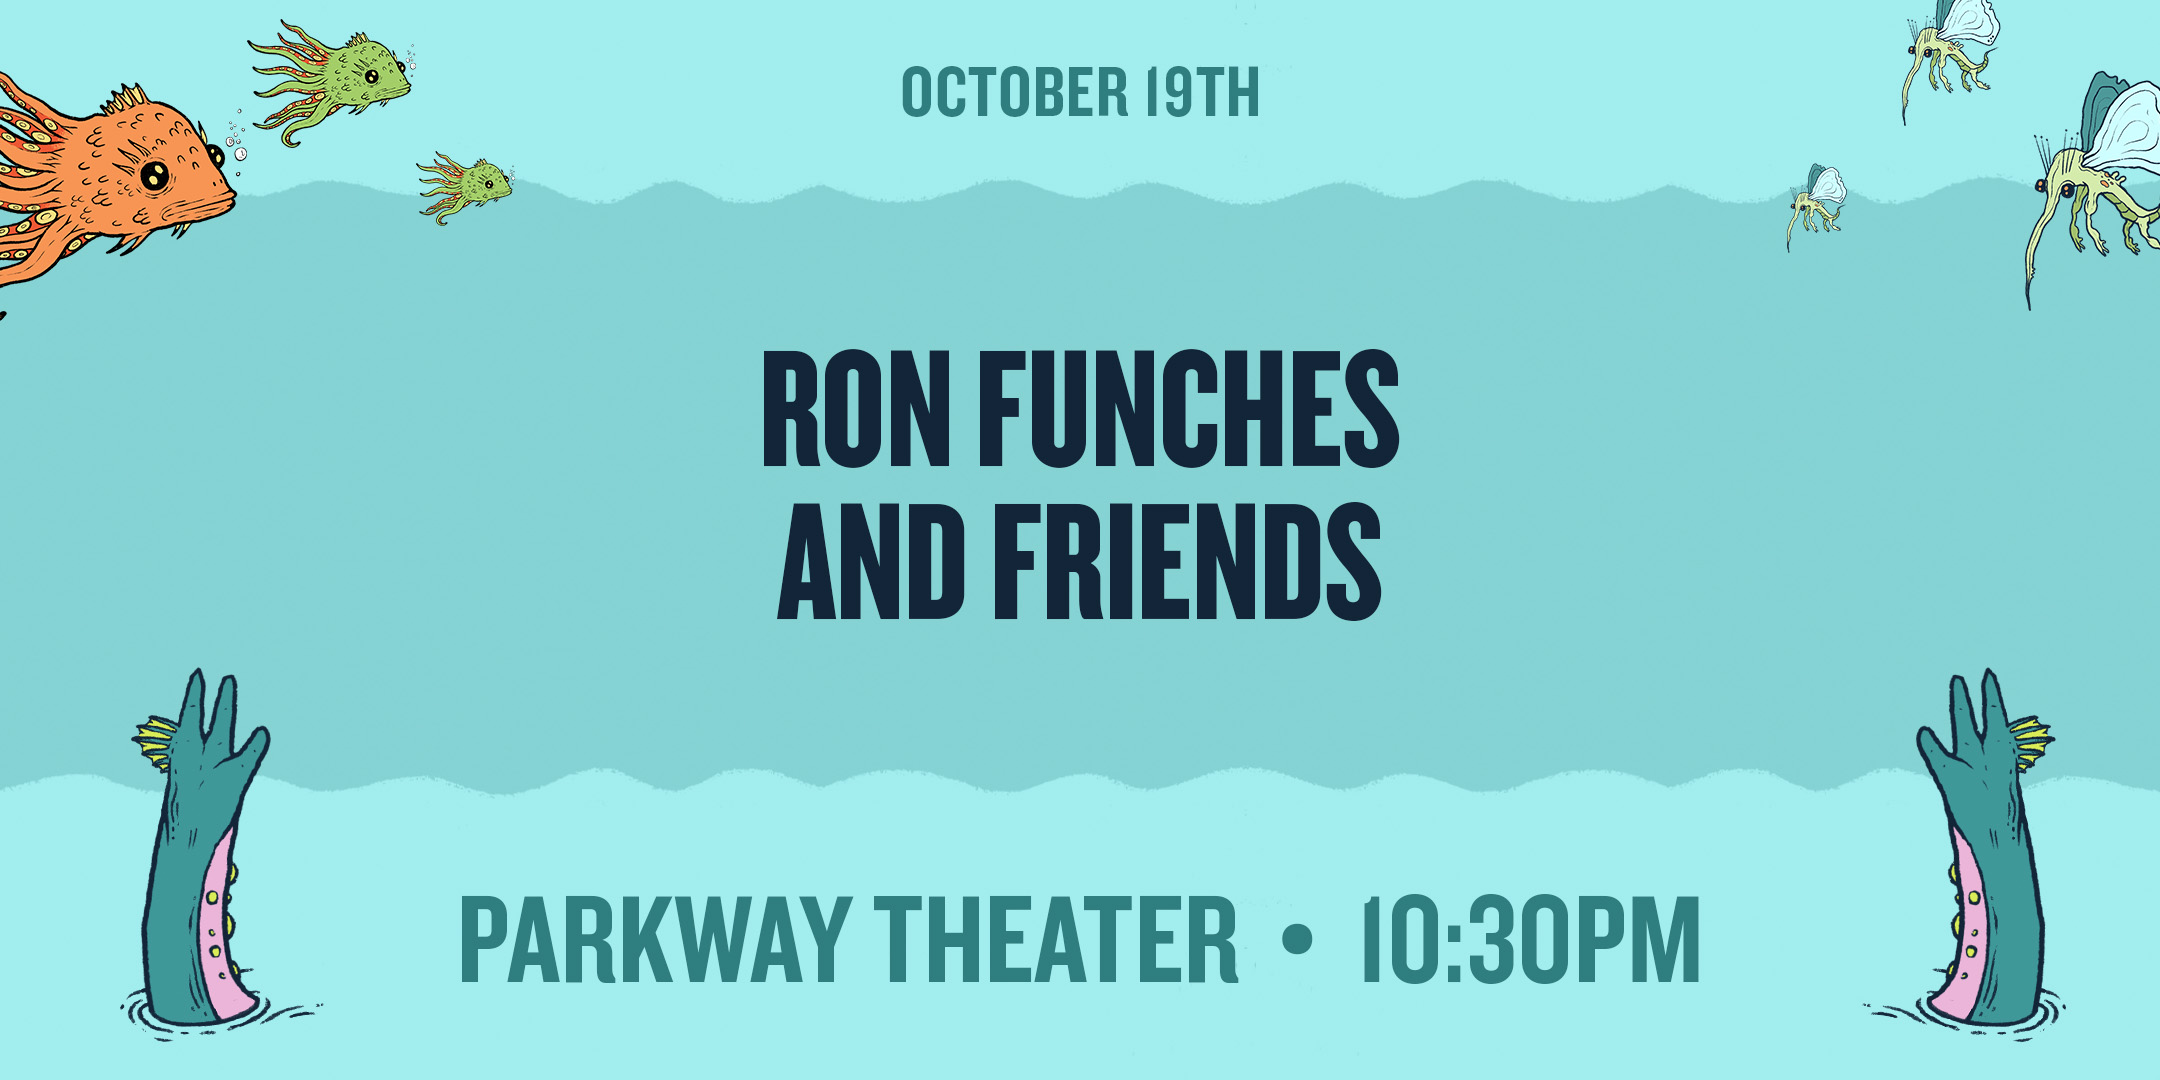 oct19-ron_funches_and_friends.jpg